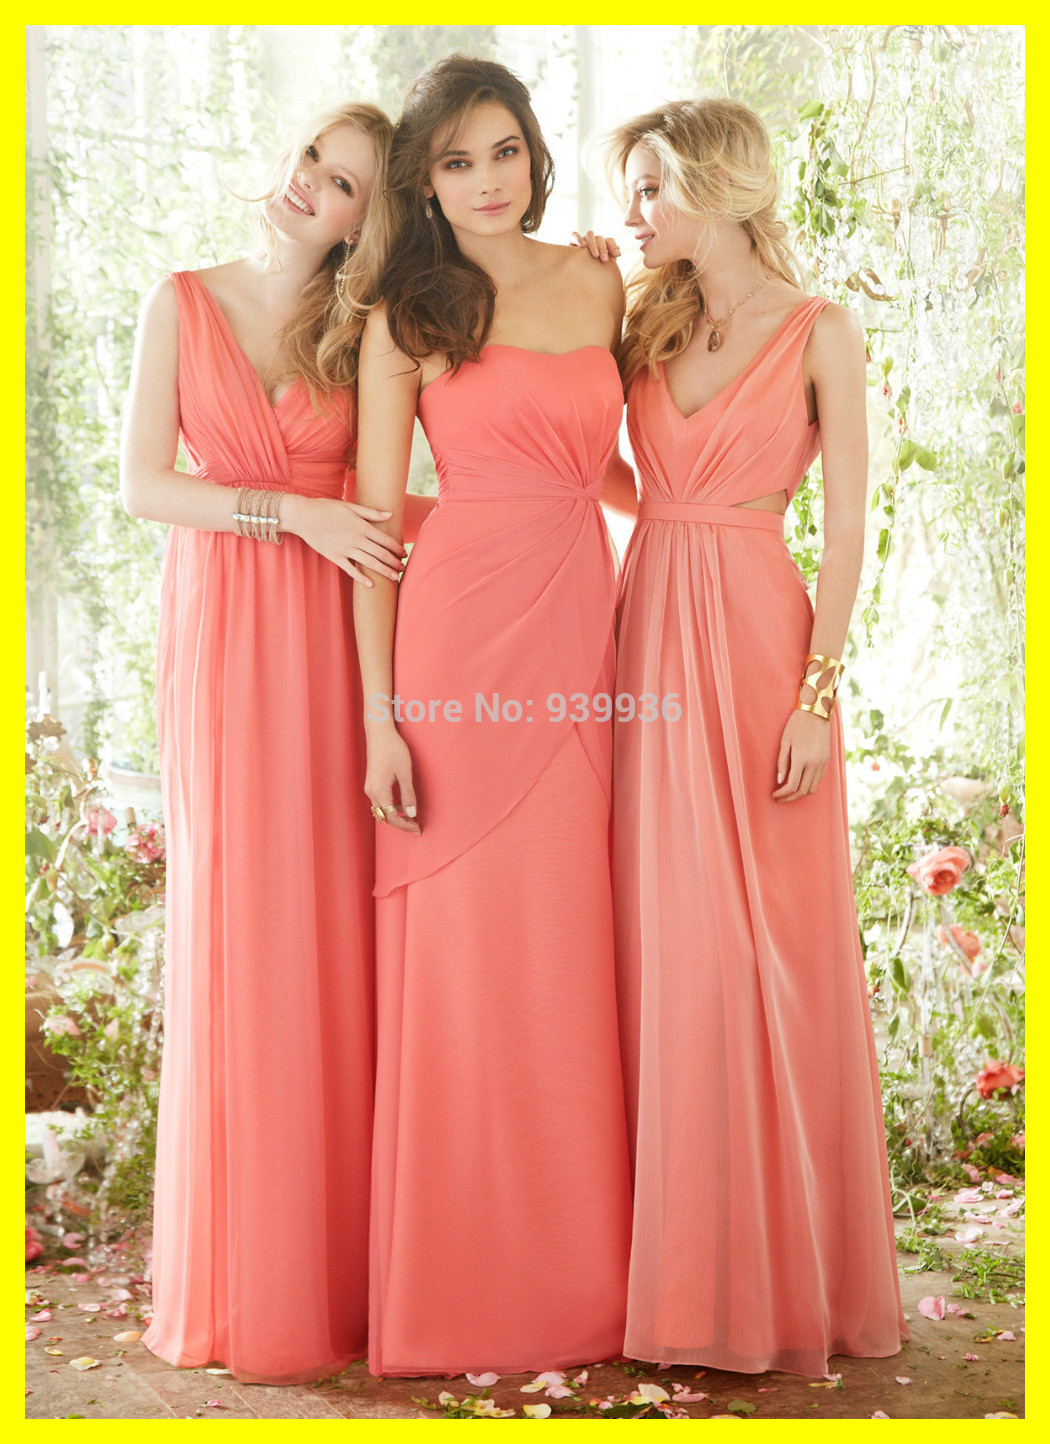 Cheap wedding dresses in south africa discount wedding for Cheap wedding dresses cape town